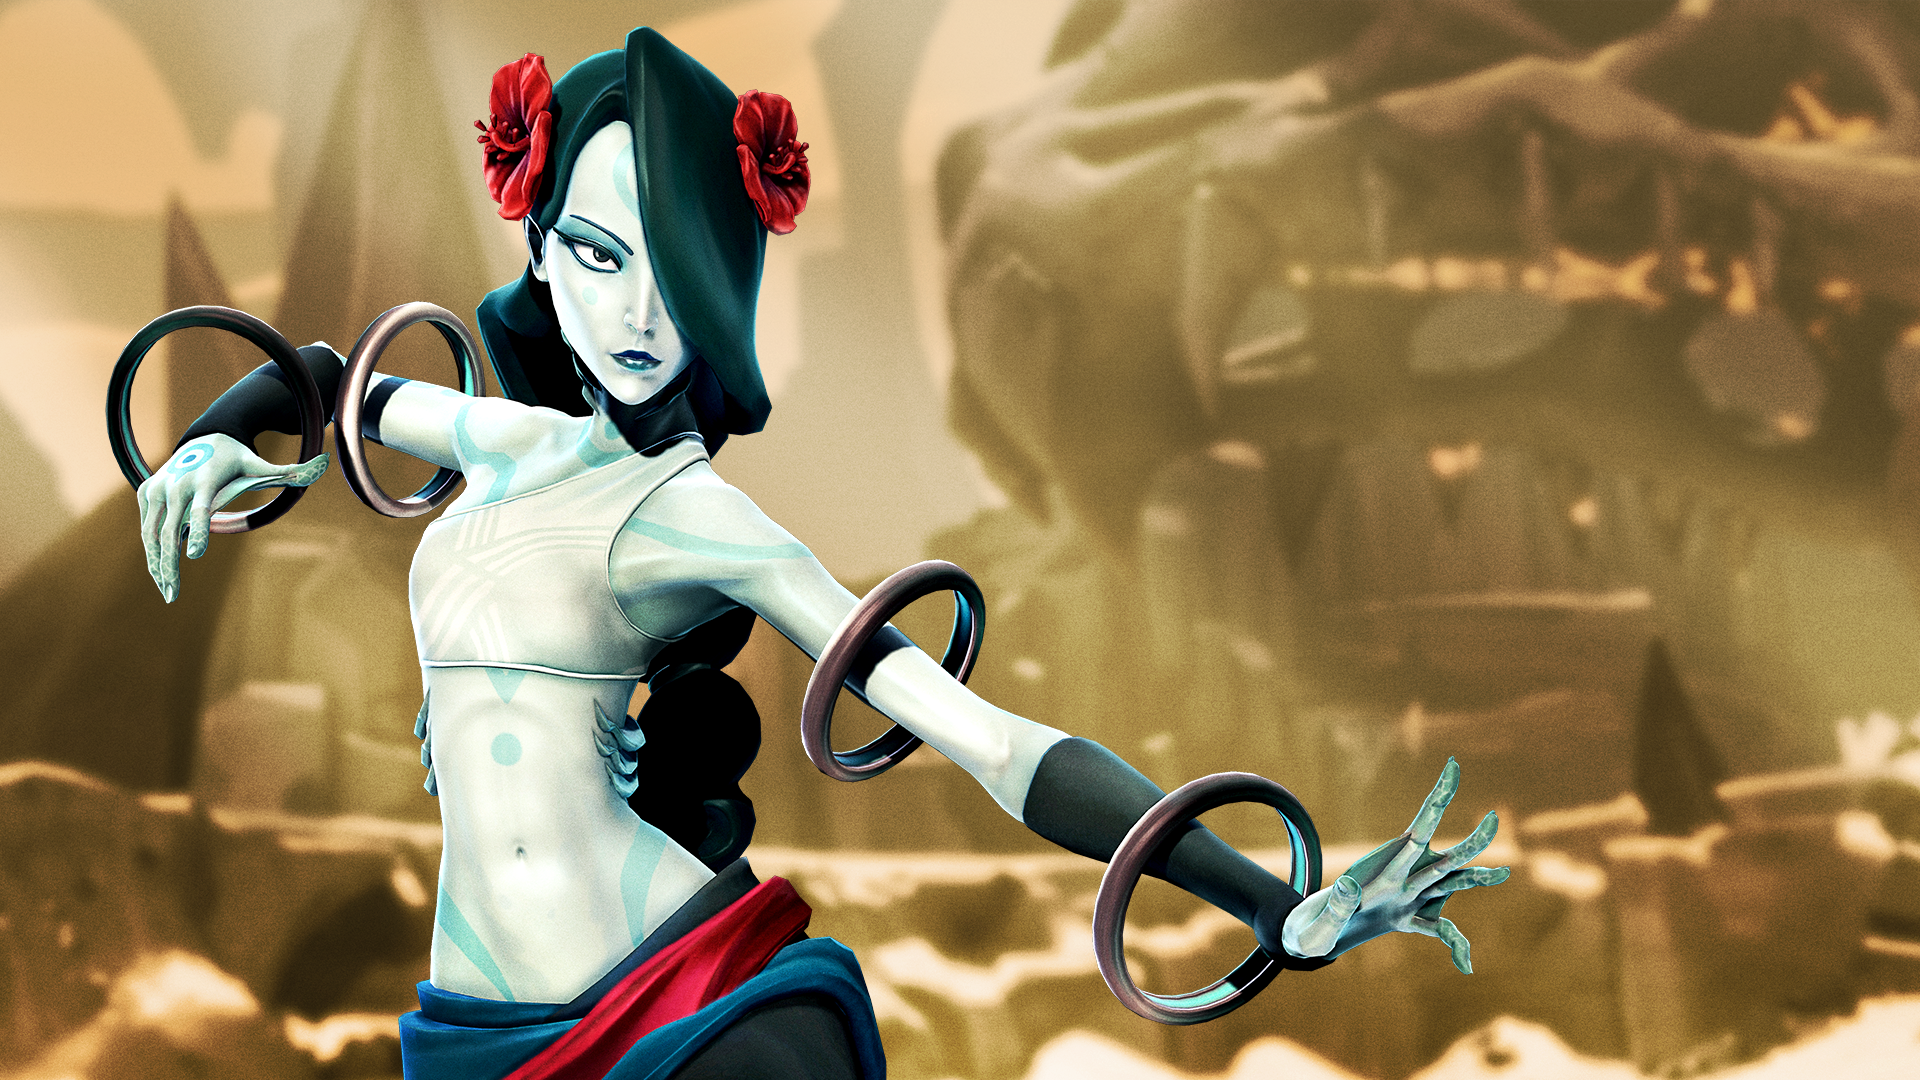 Double XP Event This Weekend For Battleborn